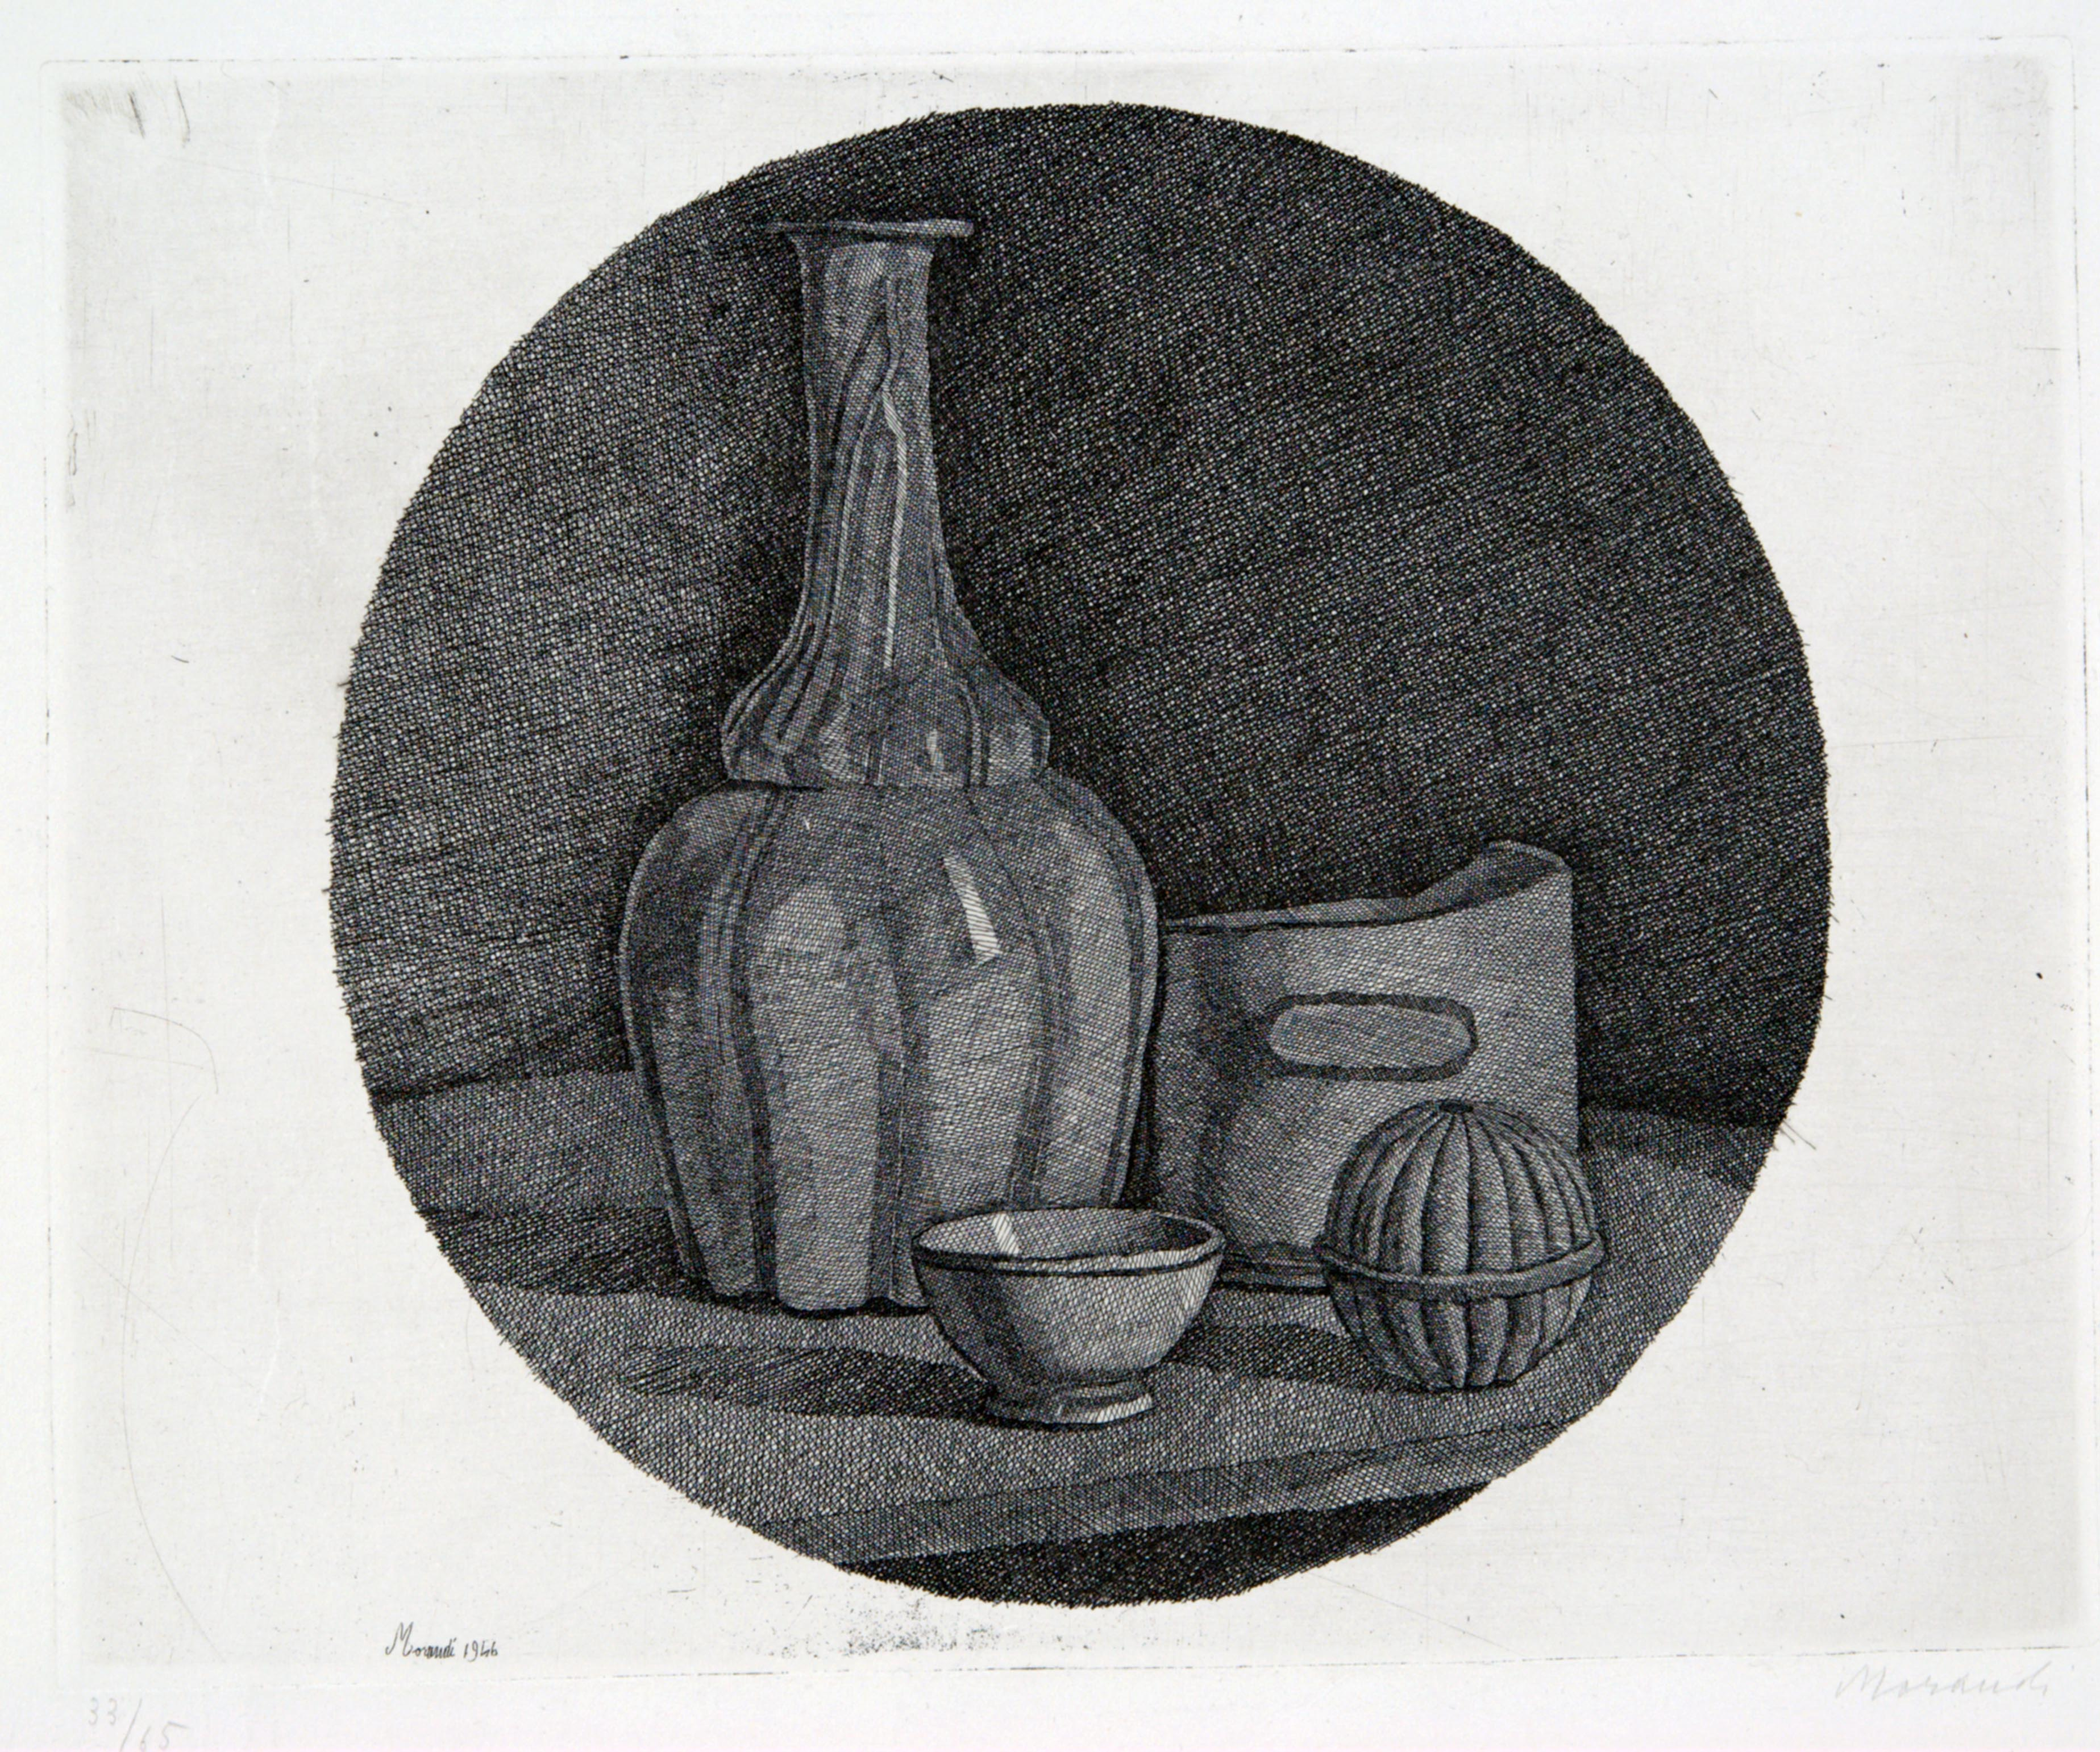 Giorgio Morandi, Large Circular Still Life with Bottle and Three Objects, 1946